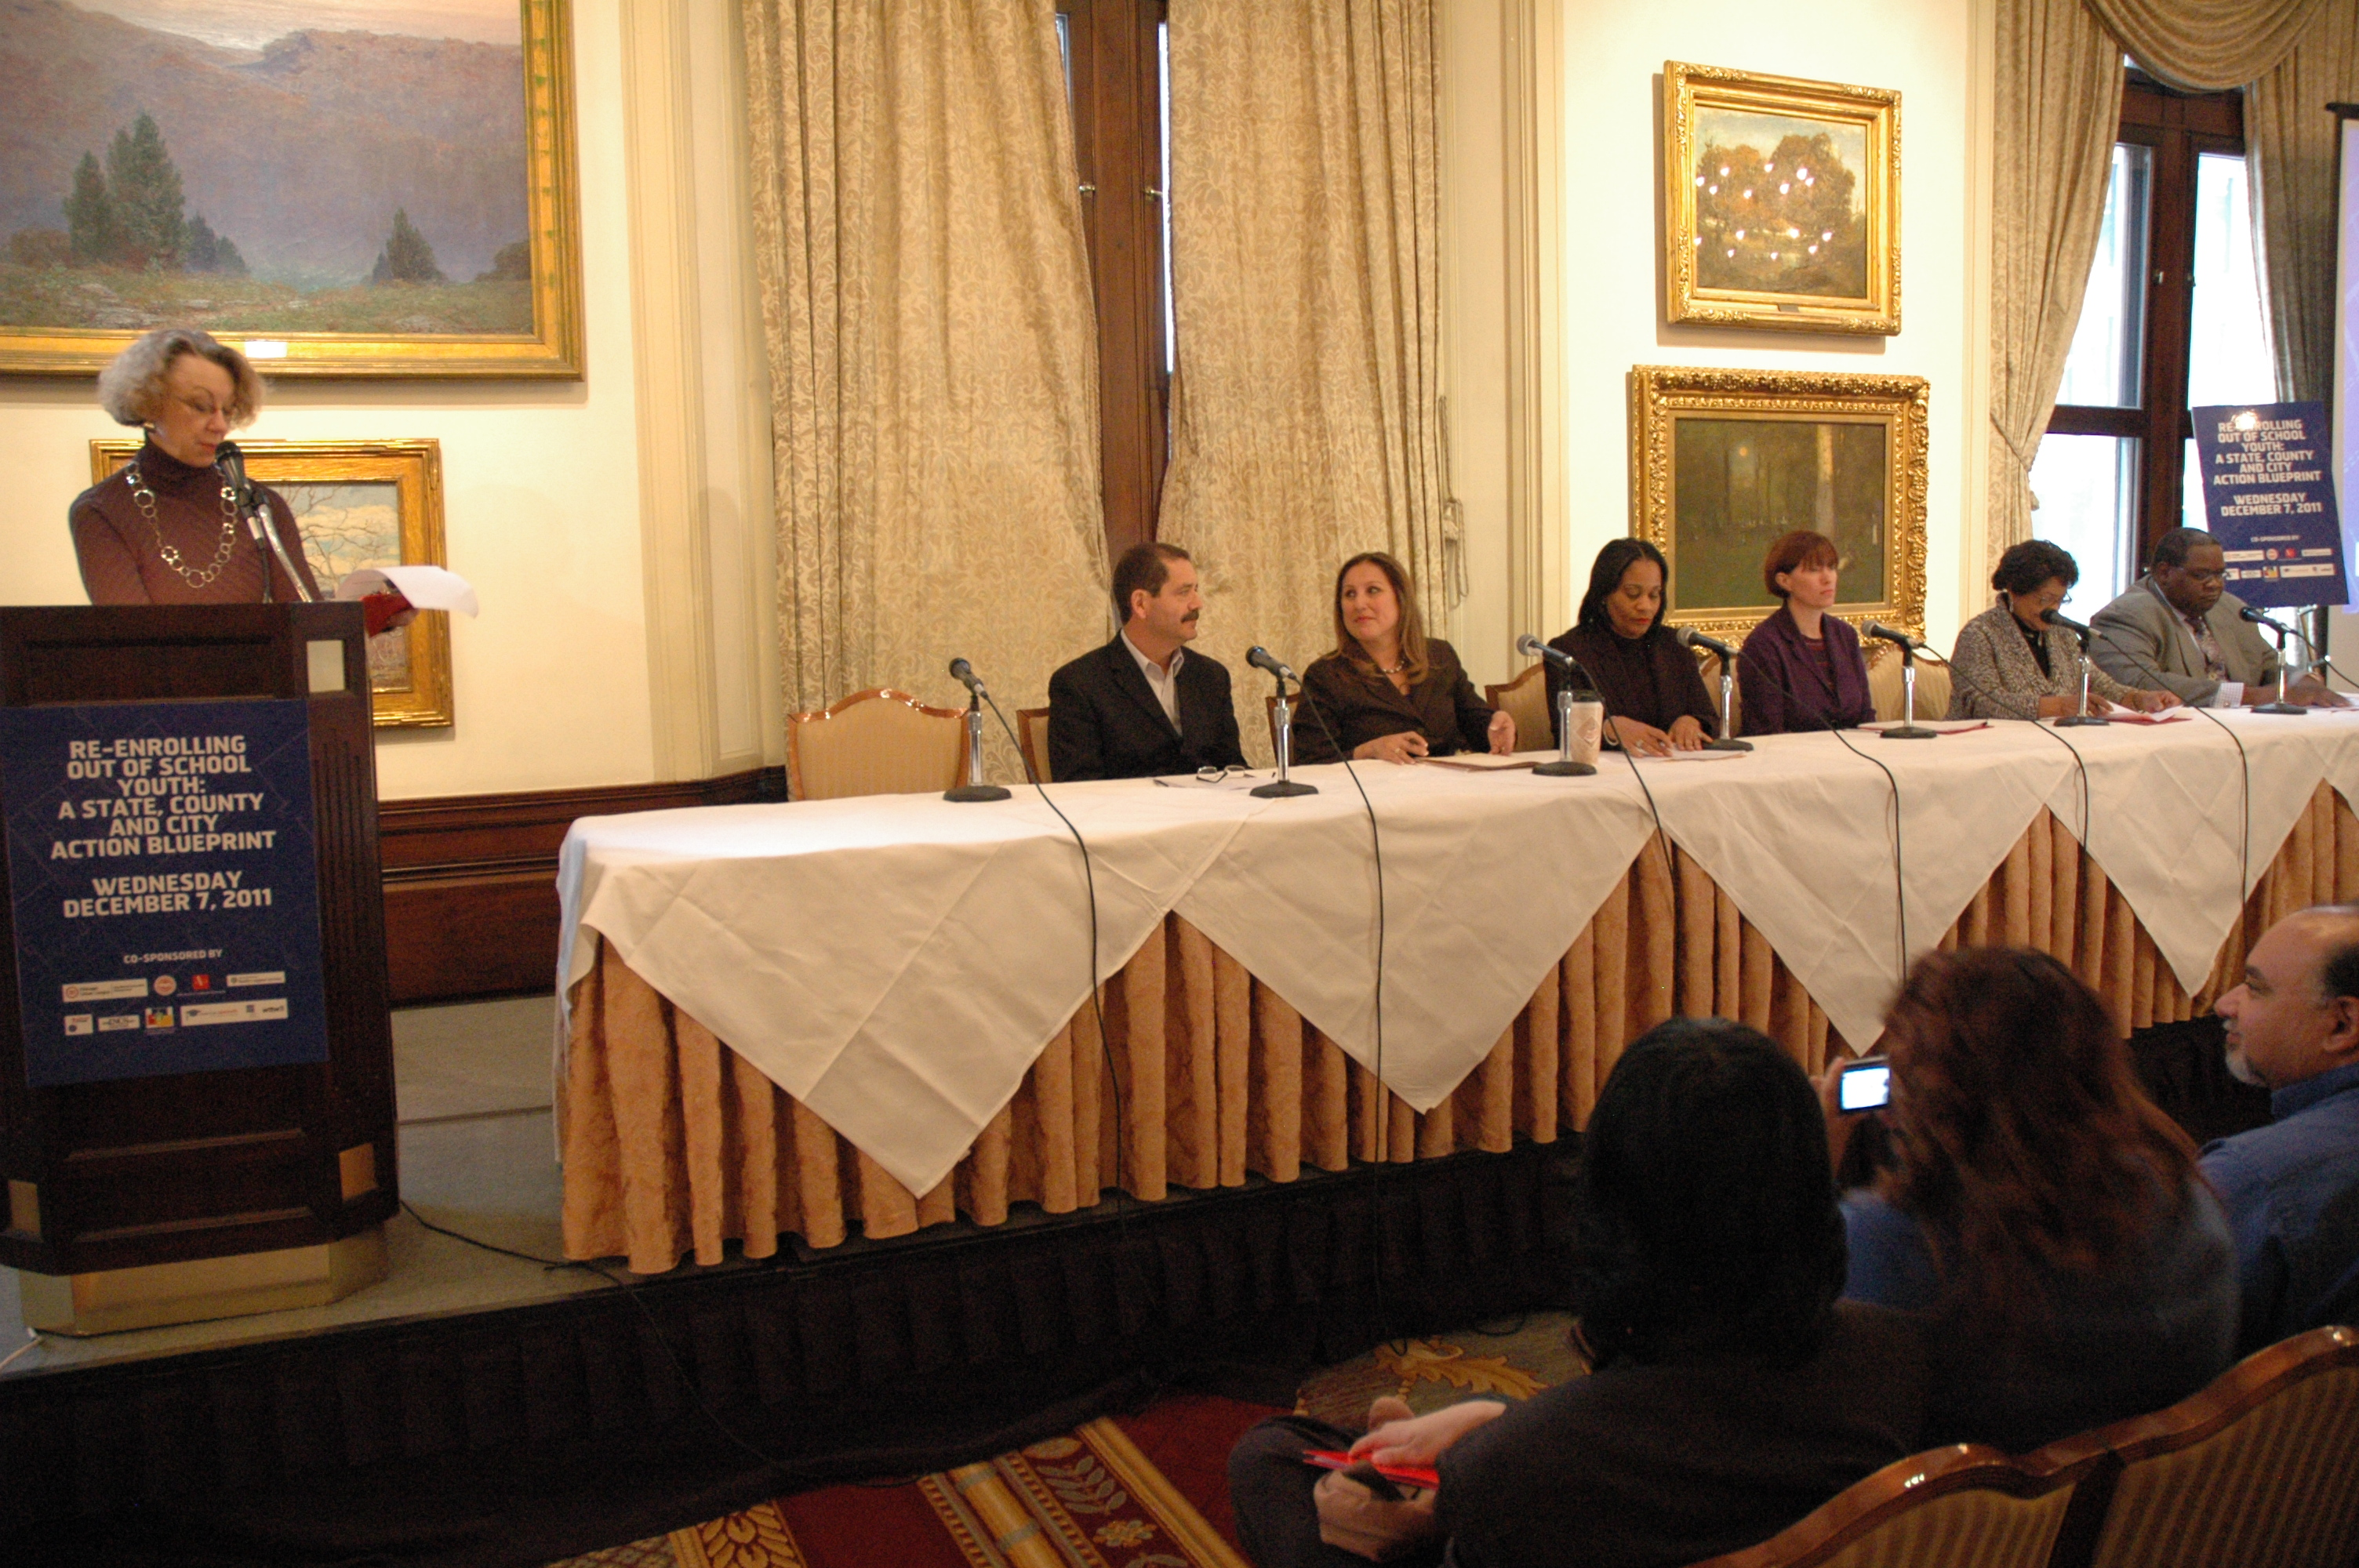 Alternative schools network thinkinc policy forum with alternative schools network and chicago urban league at the union league club chicago il december 10 2012 malvernweather Choice Image